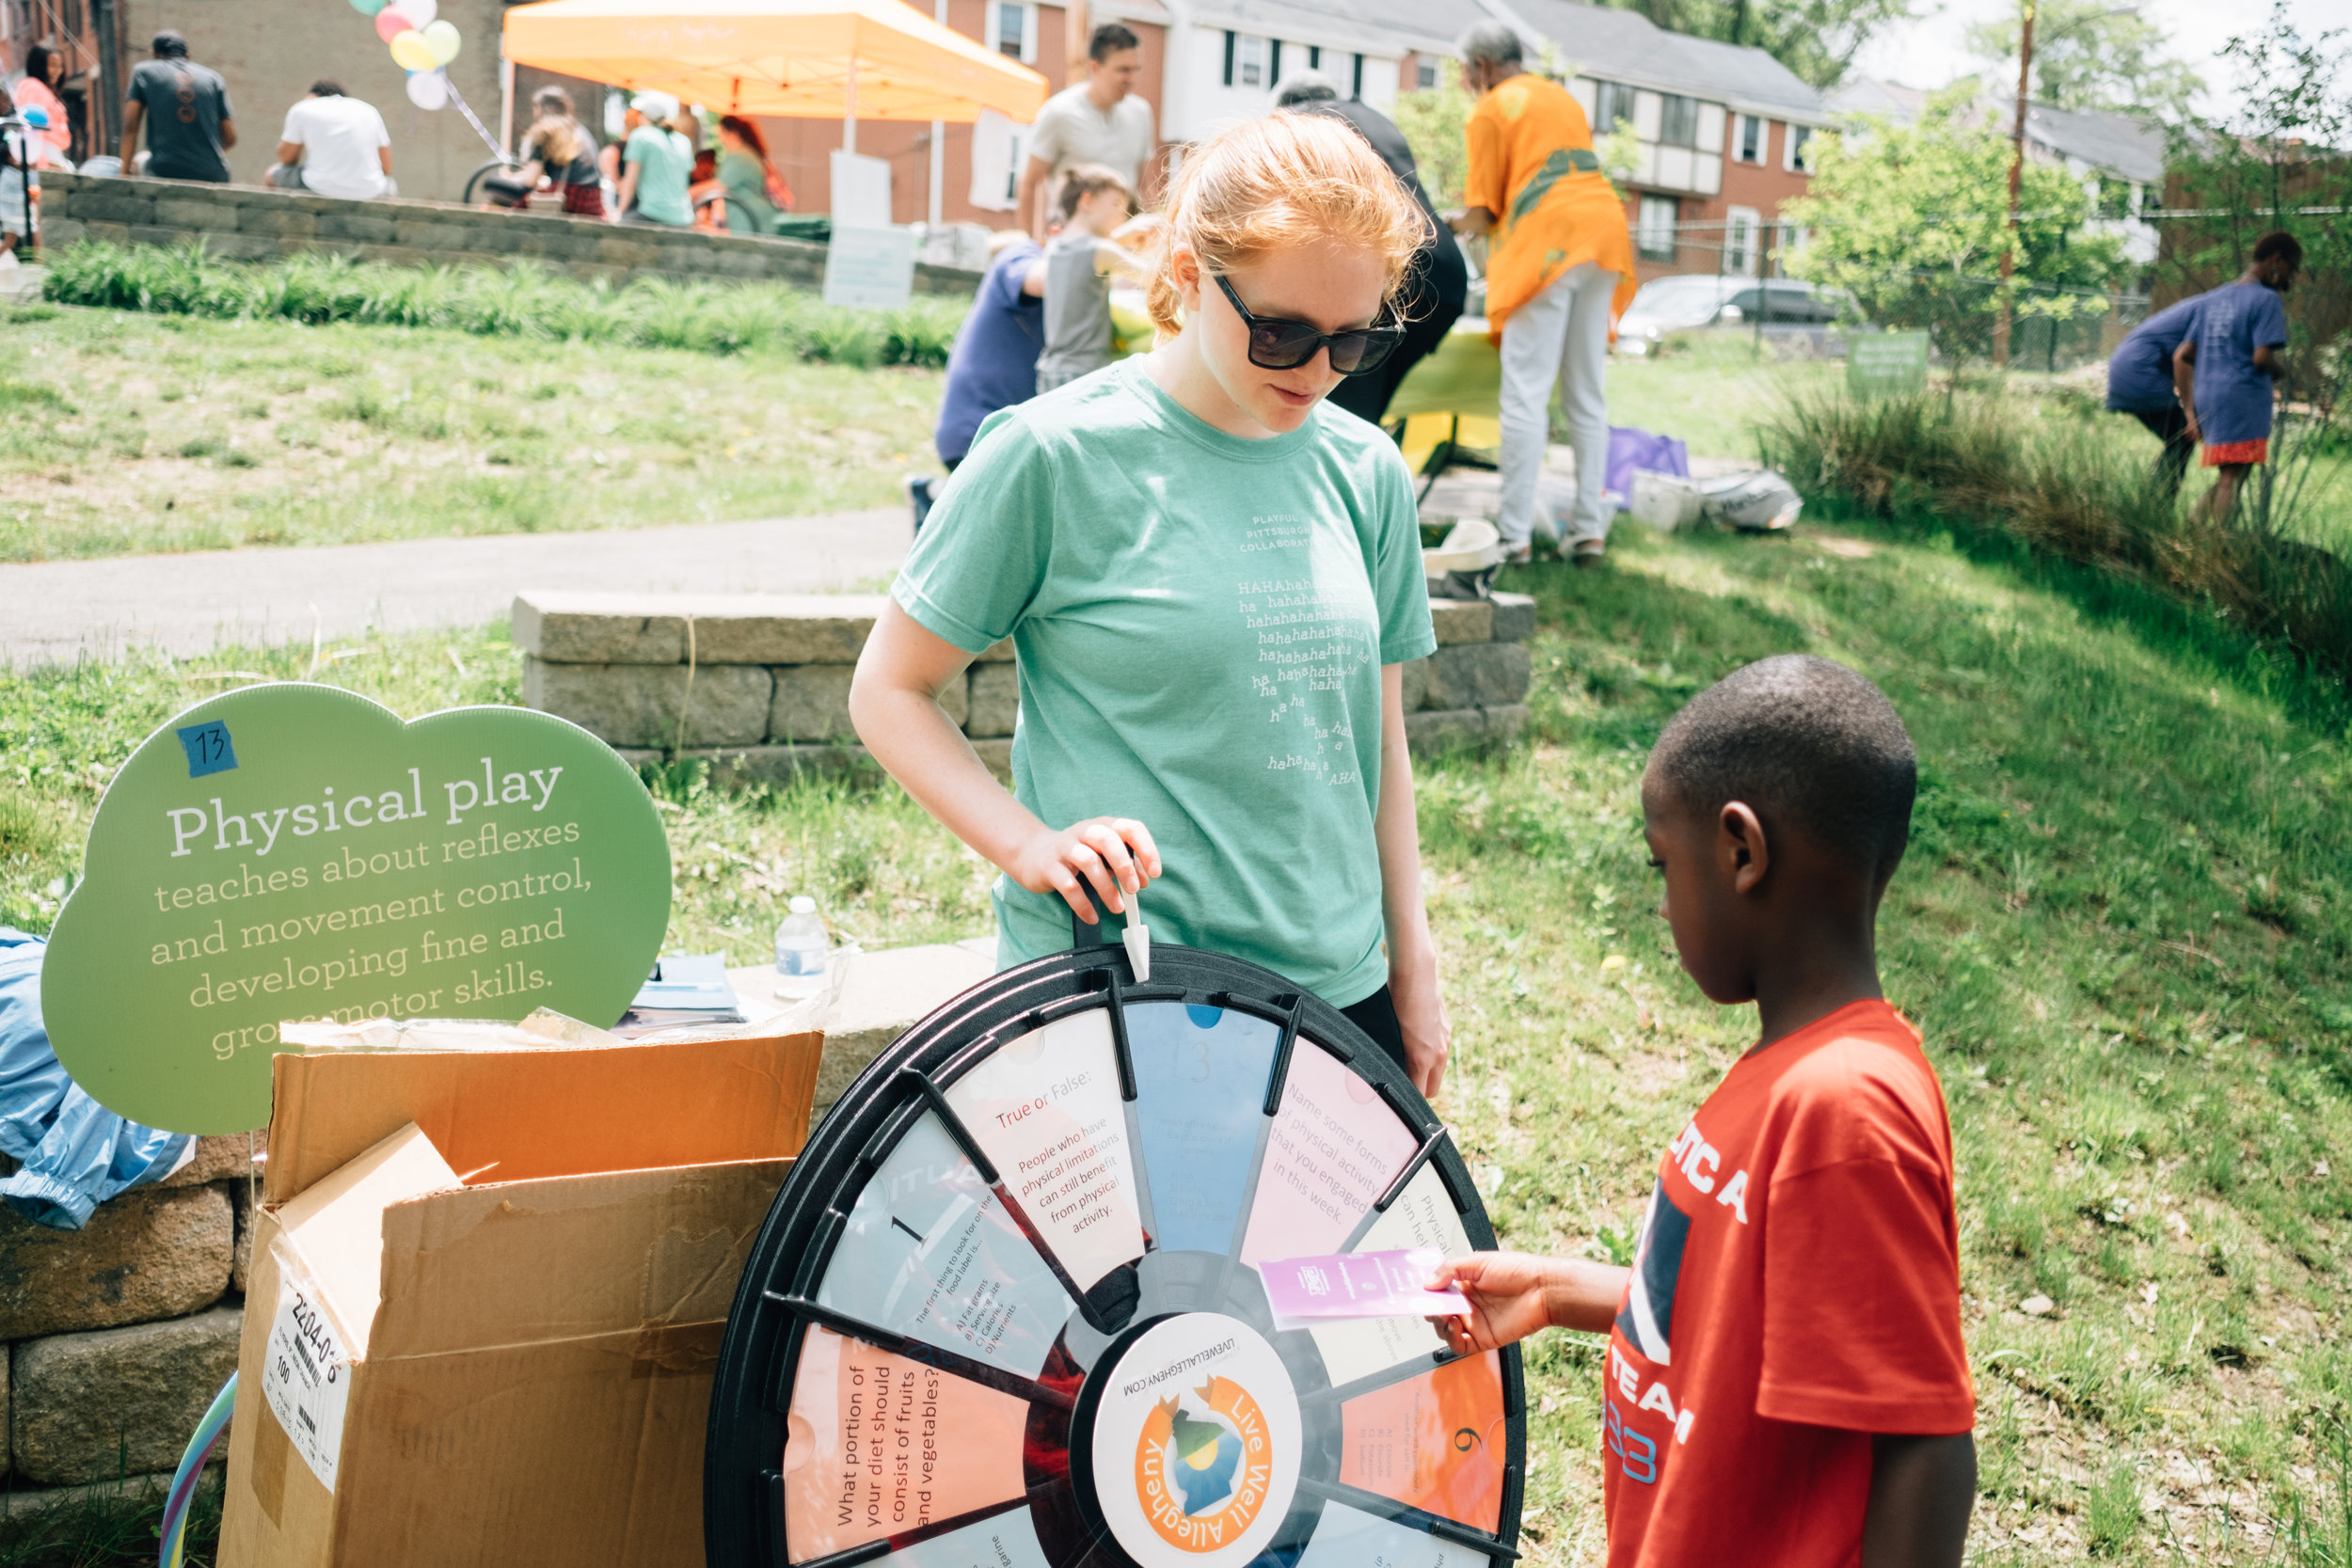 Prize wheel with Live Well Allegheny